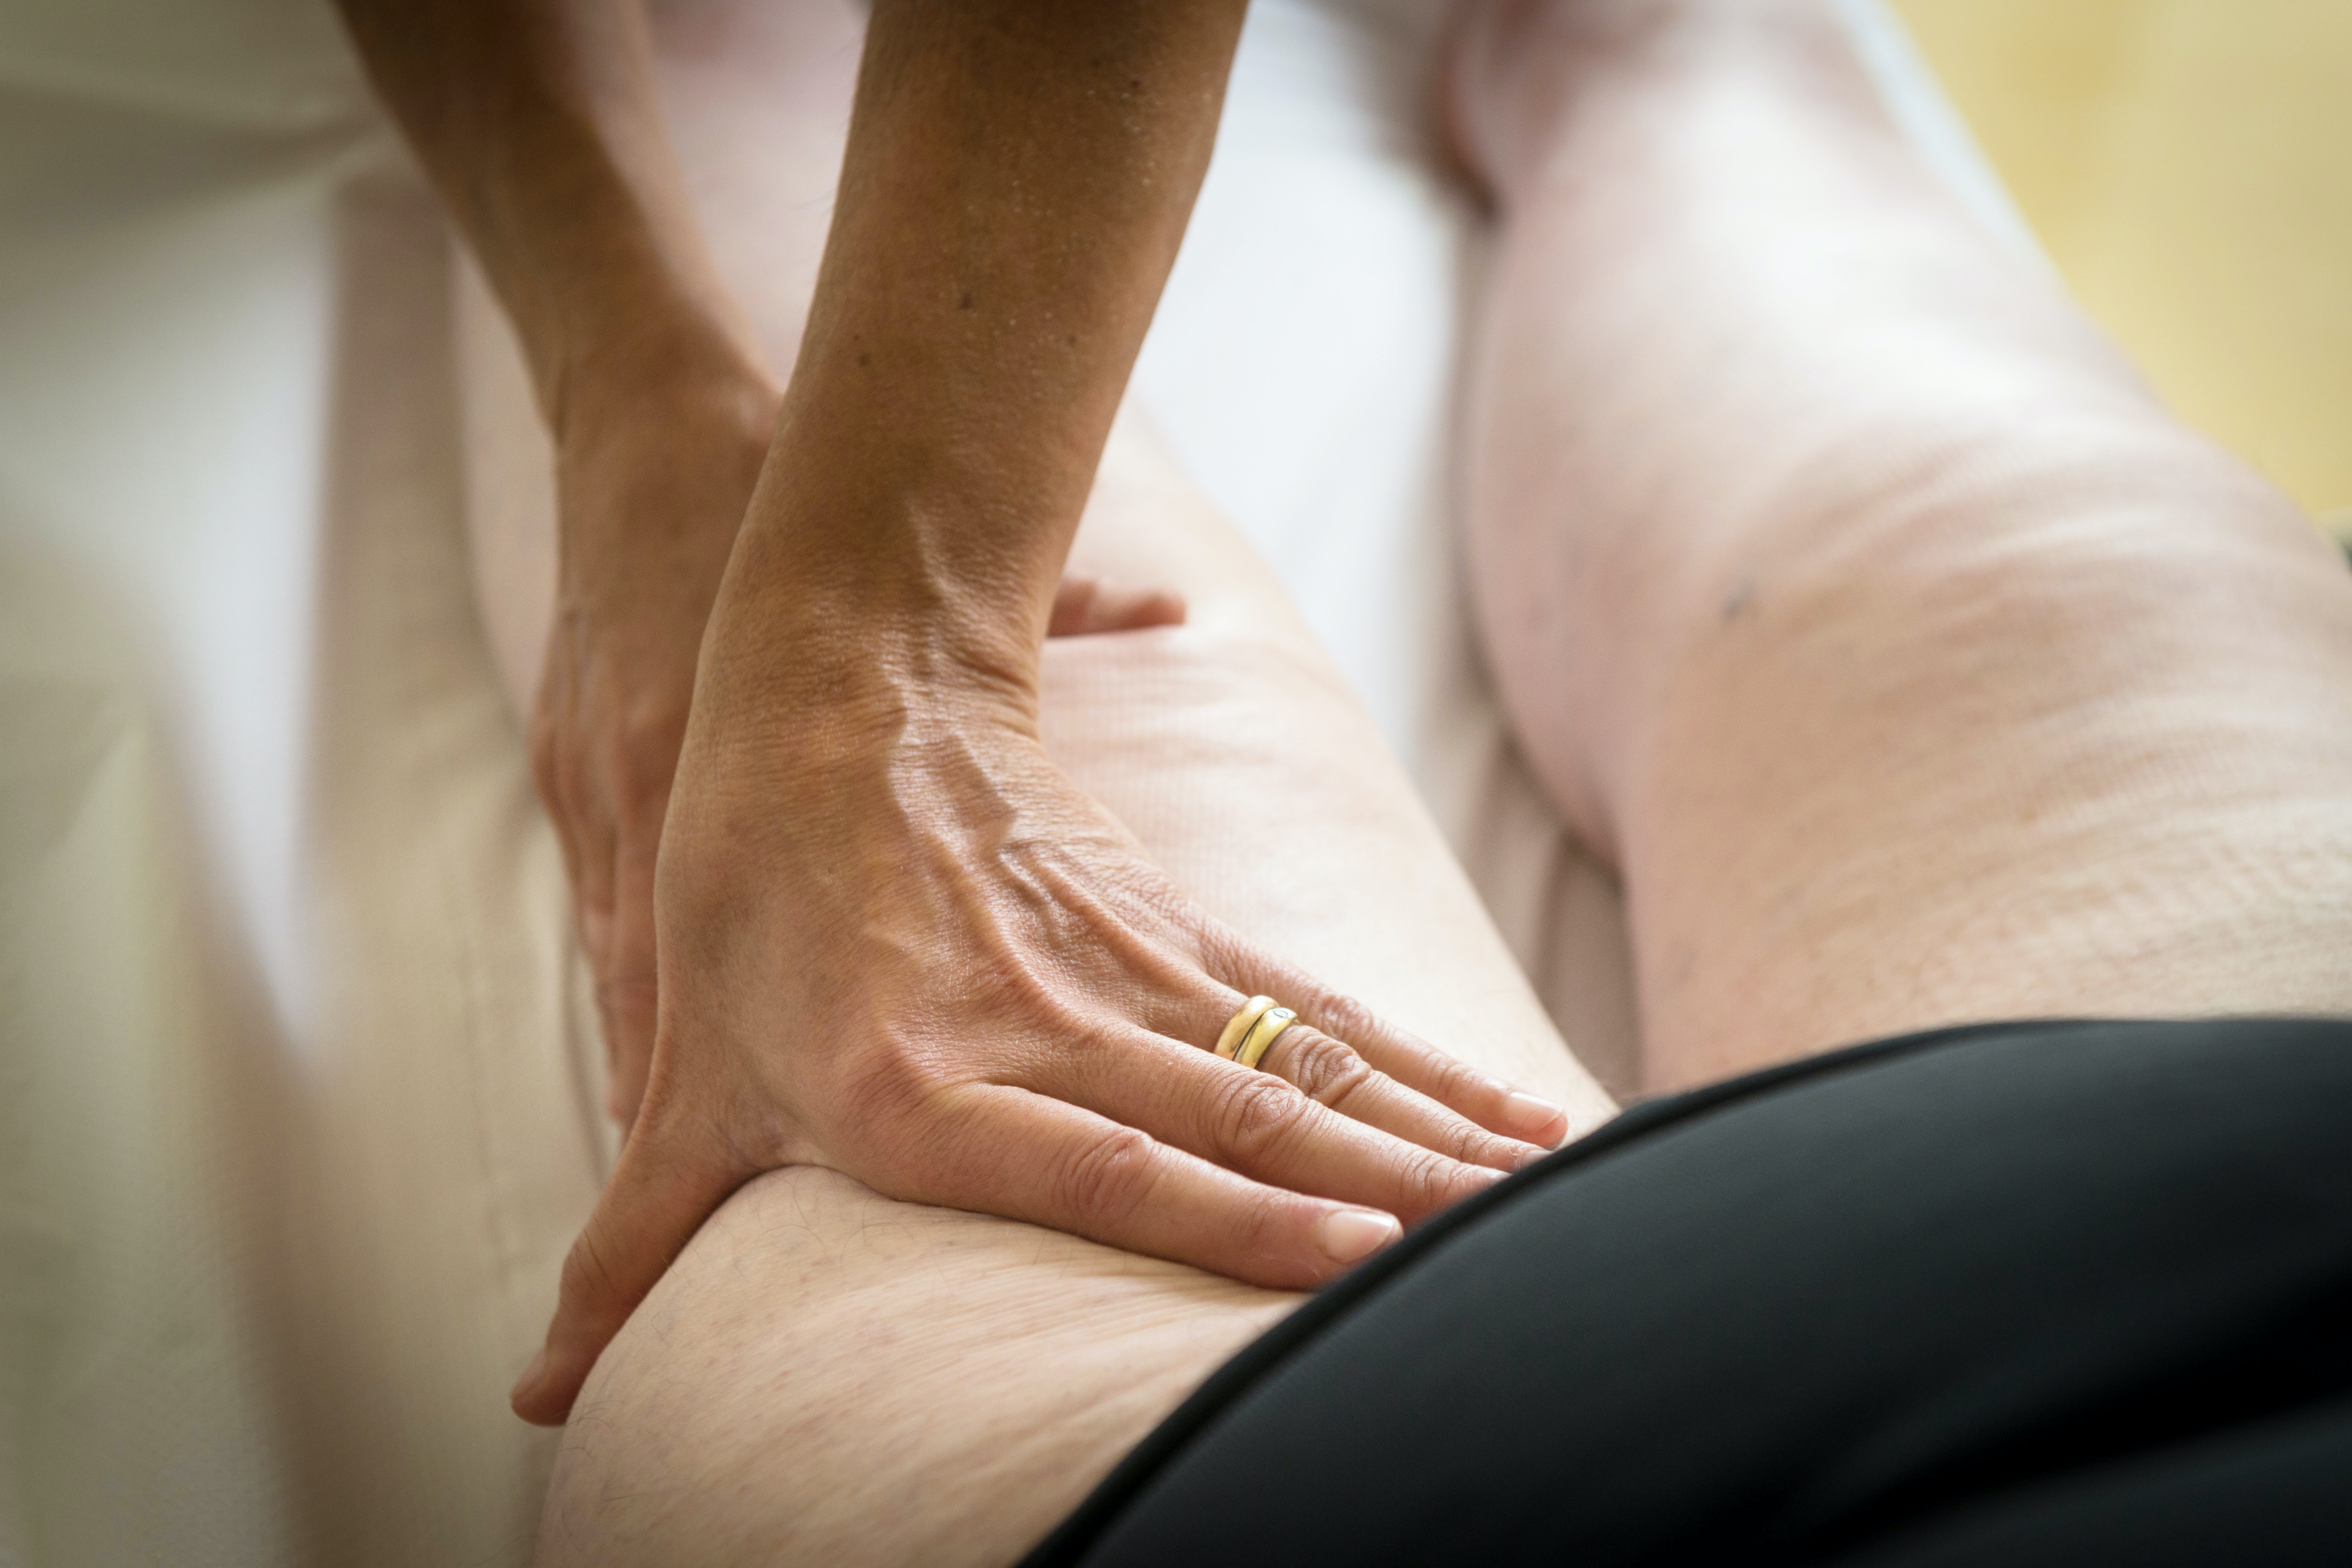 An image depicting a person suffering from swelling of one thigh symptoms